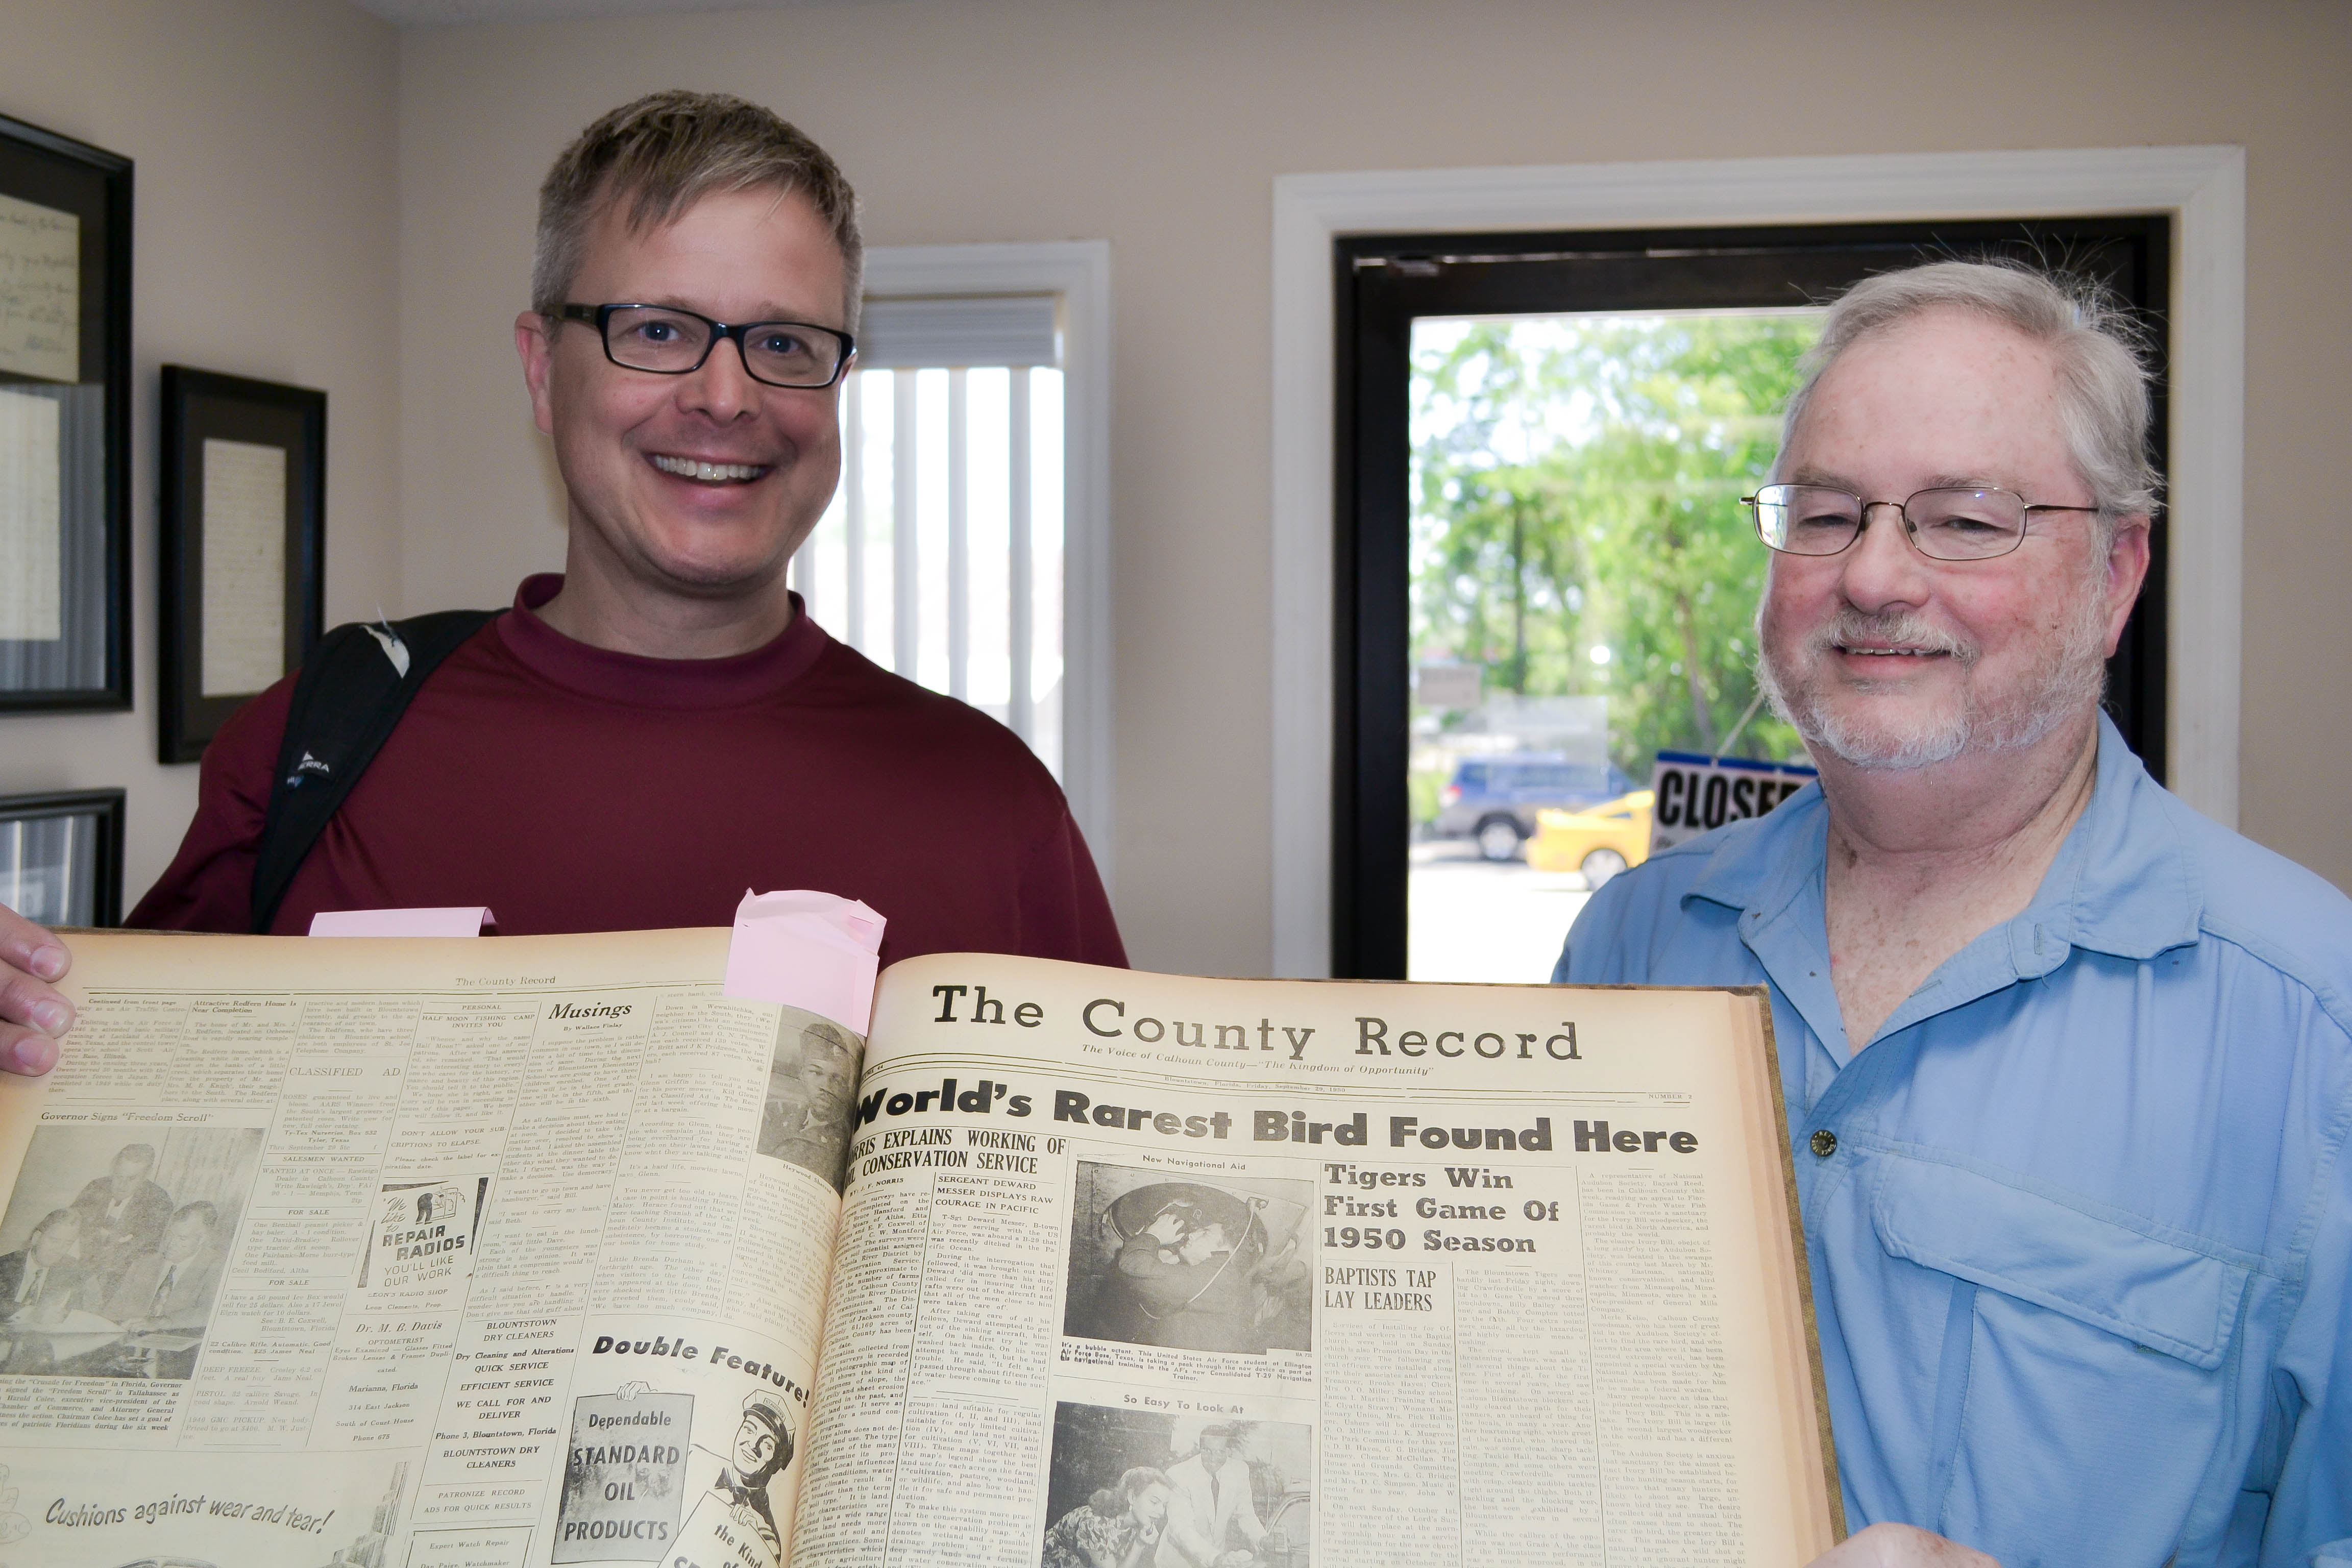 Bryntesson and Hunter at the County Record in Blountstown, Florida. Photo by Robert Turner.